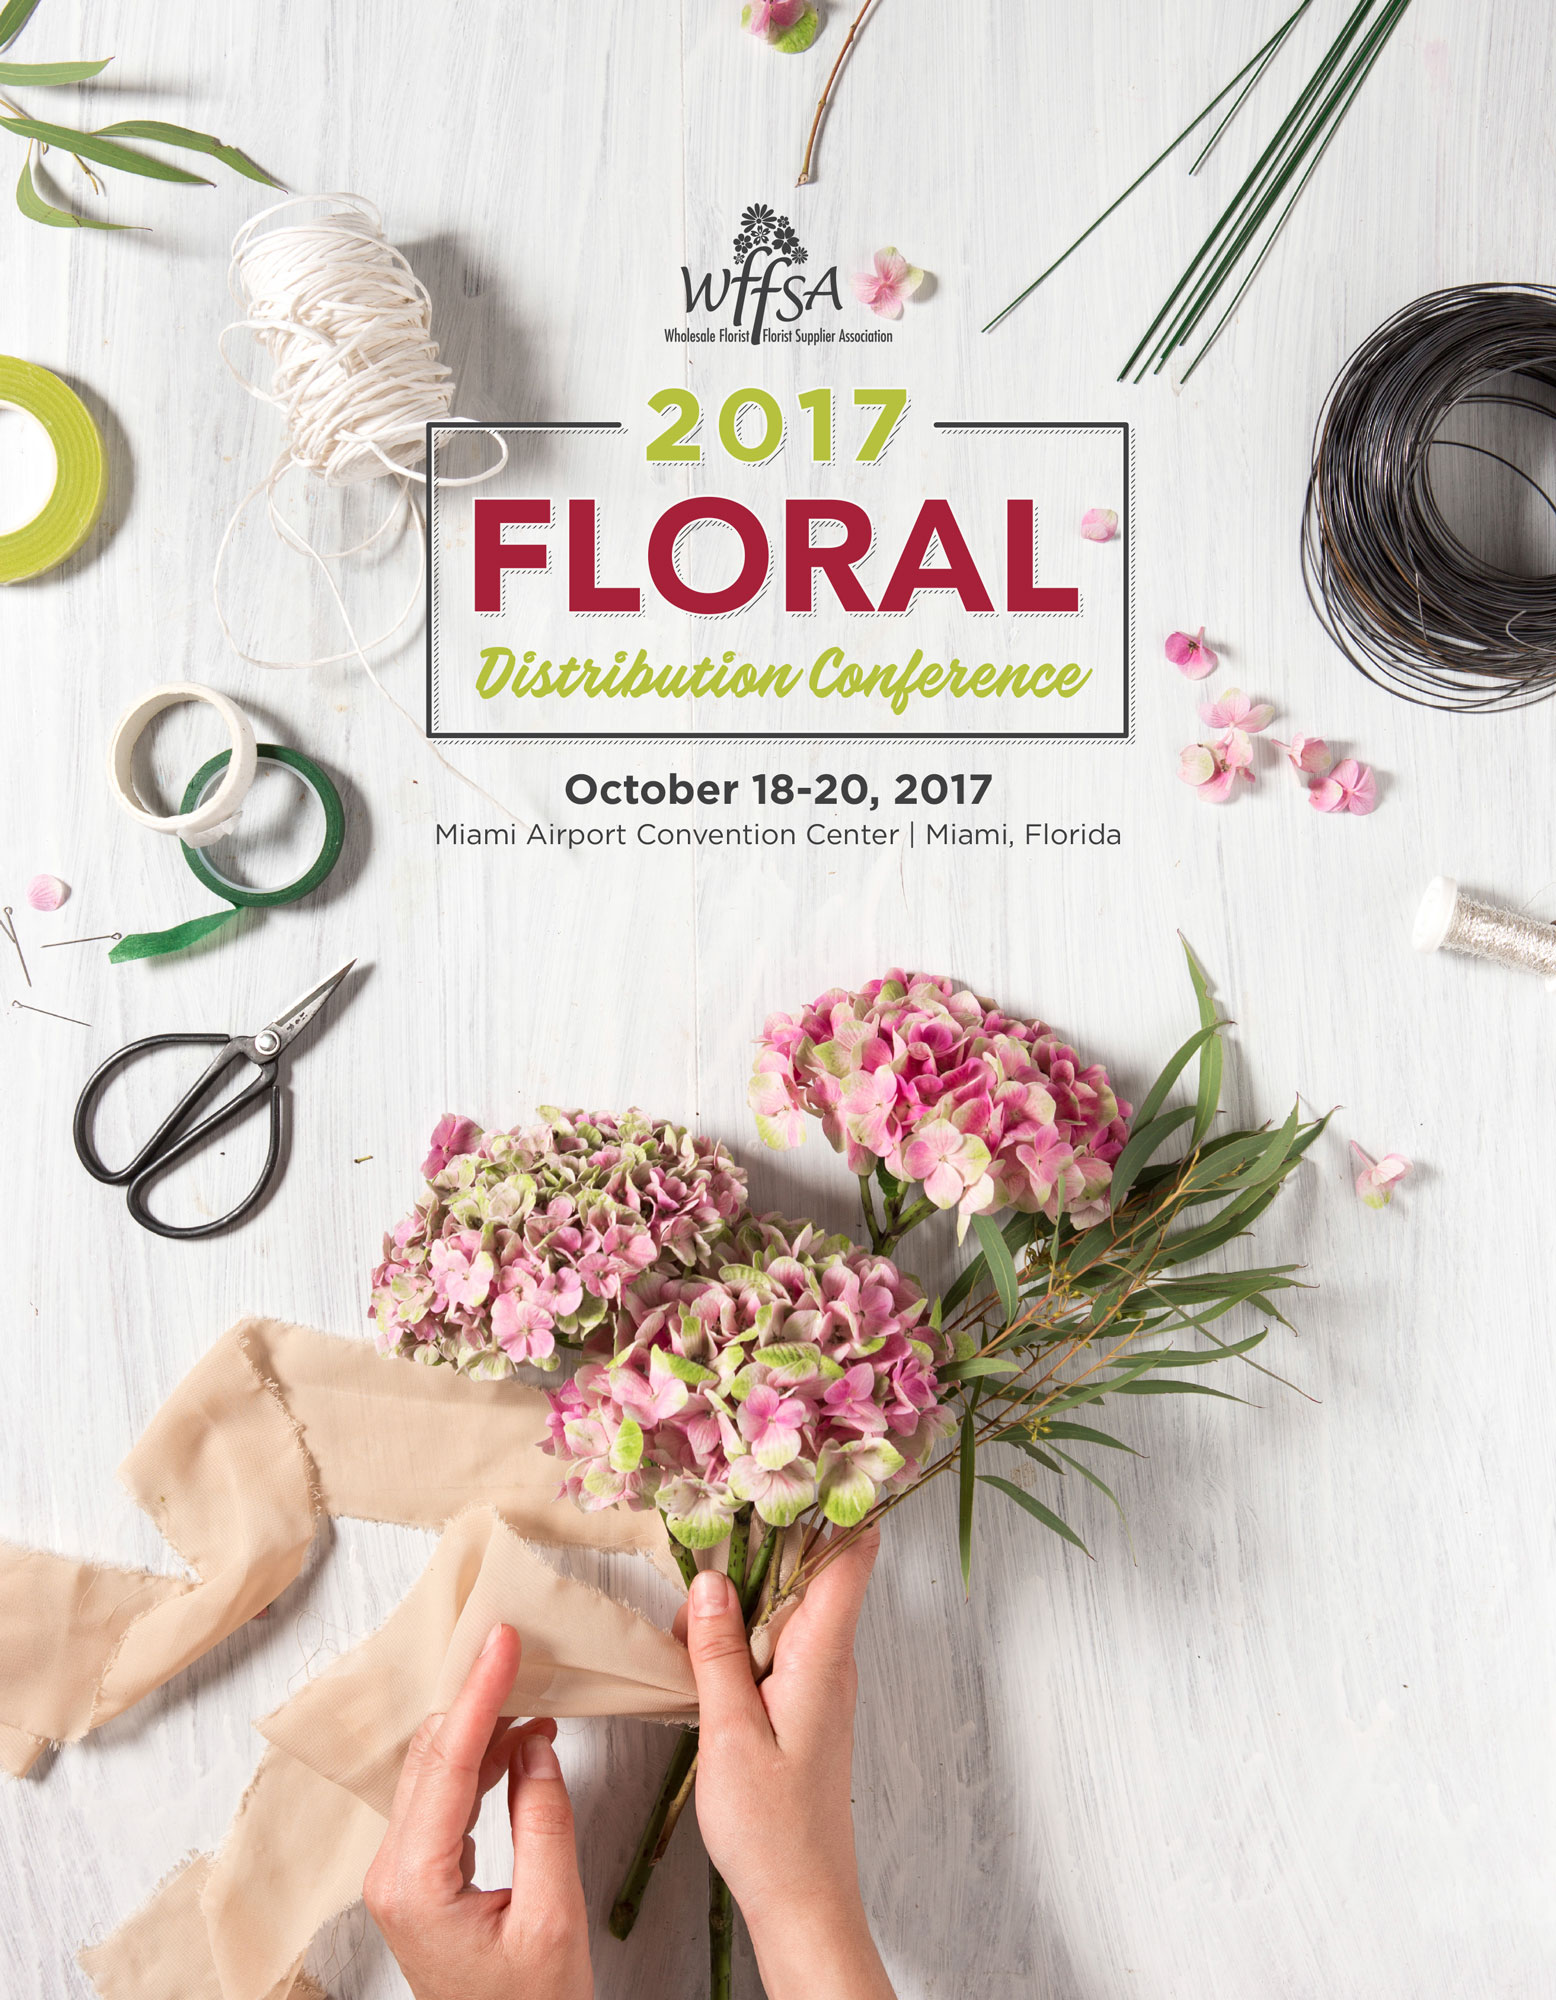 wffsa 2017 floral distribution conference october 18 20 miami